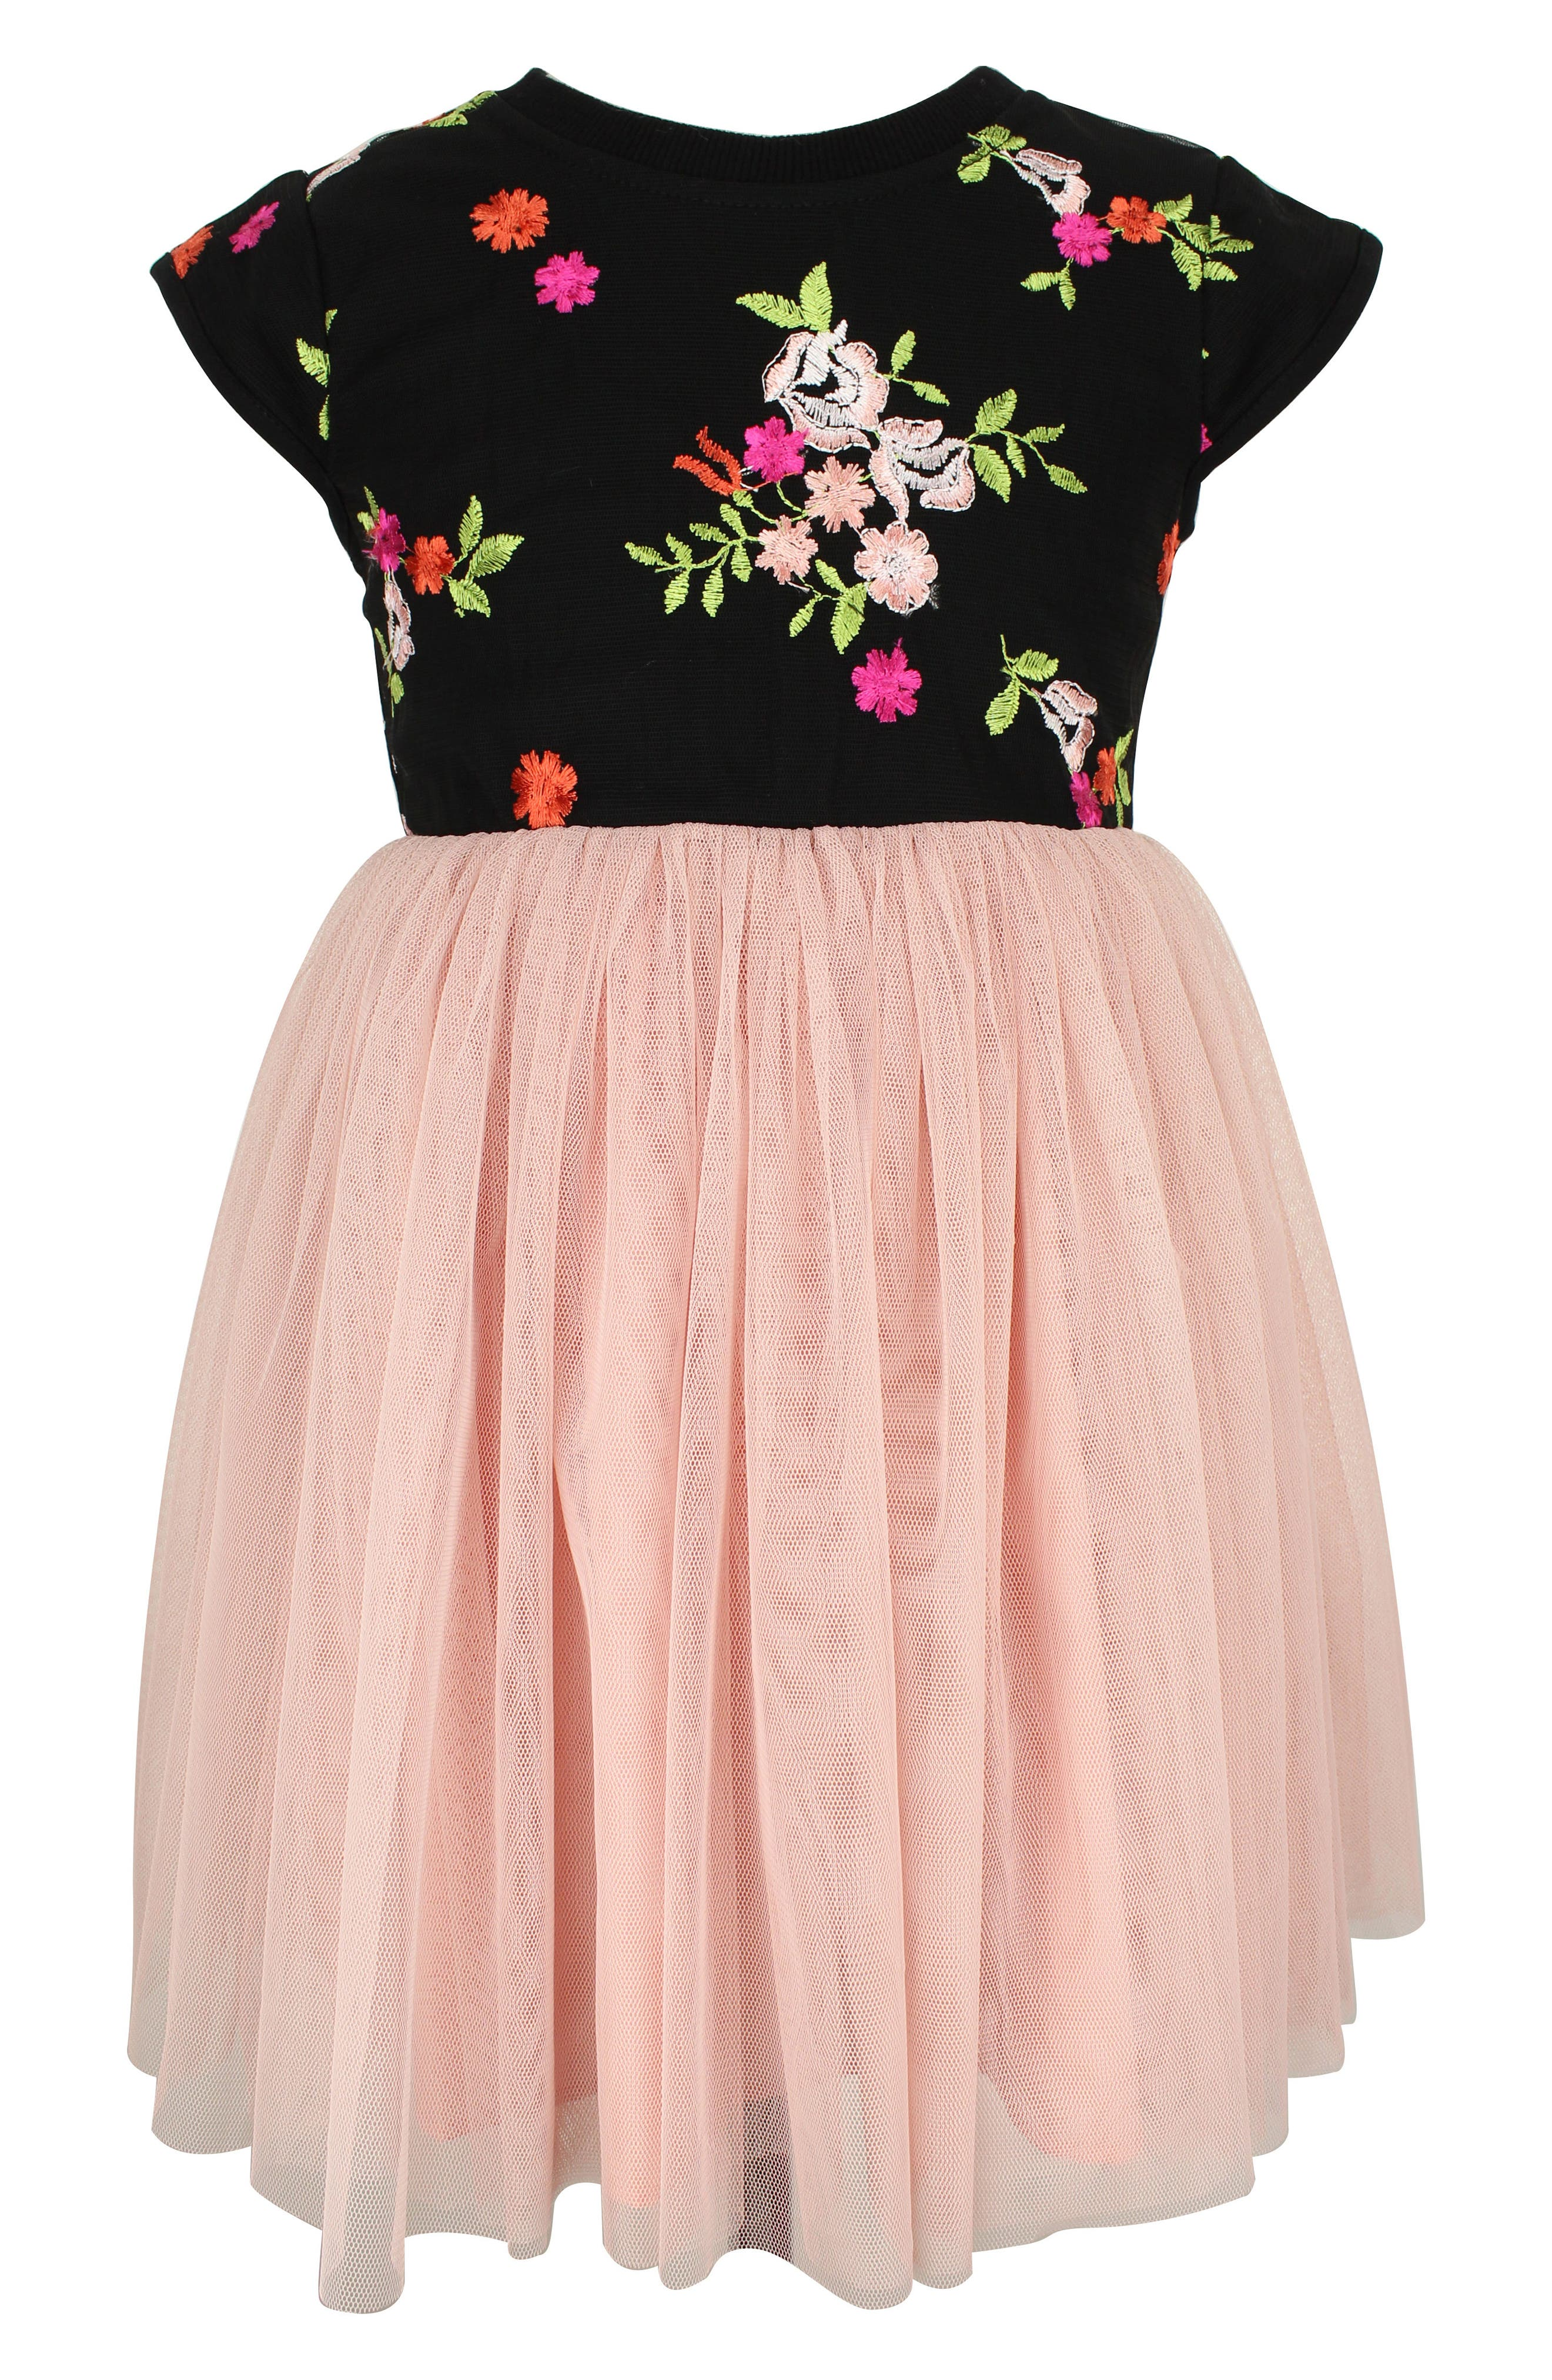 0f03a3b72 Girl's Popatu Floral Embroidery Tulle Dress